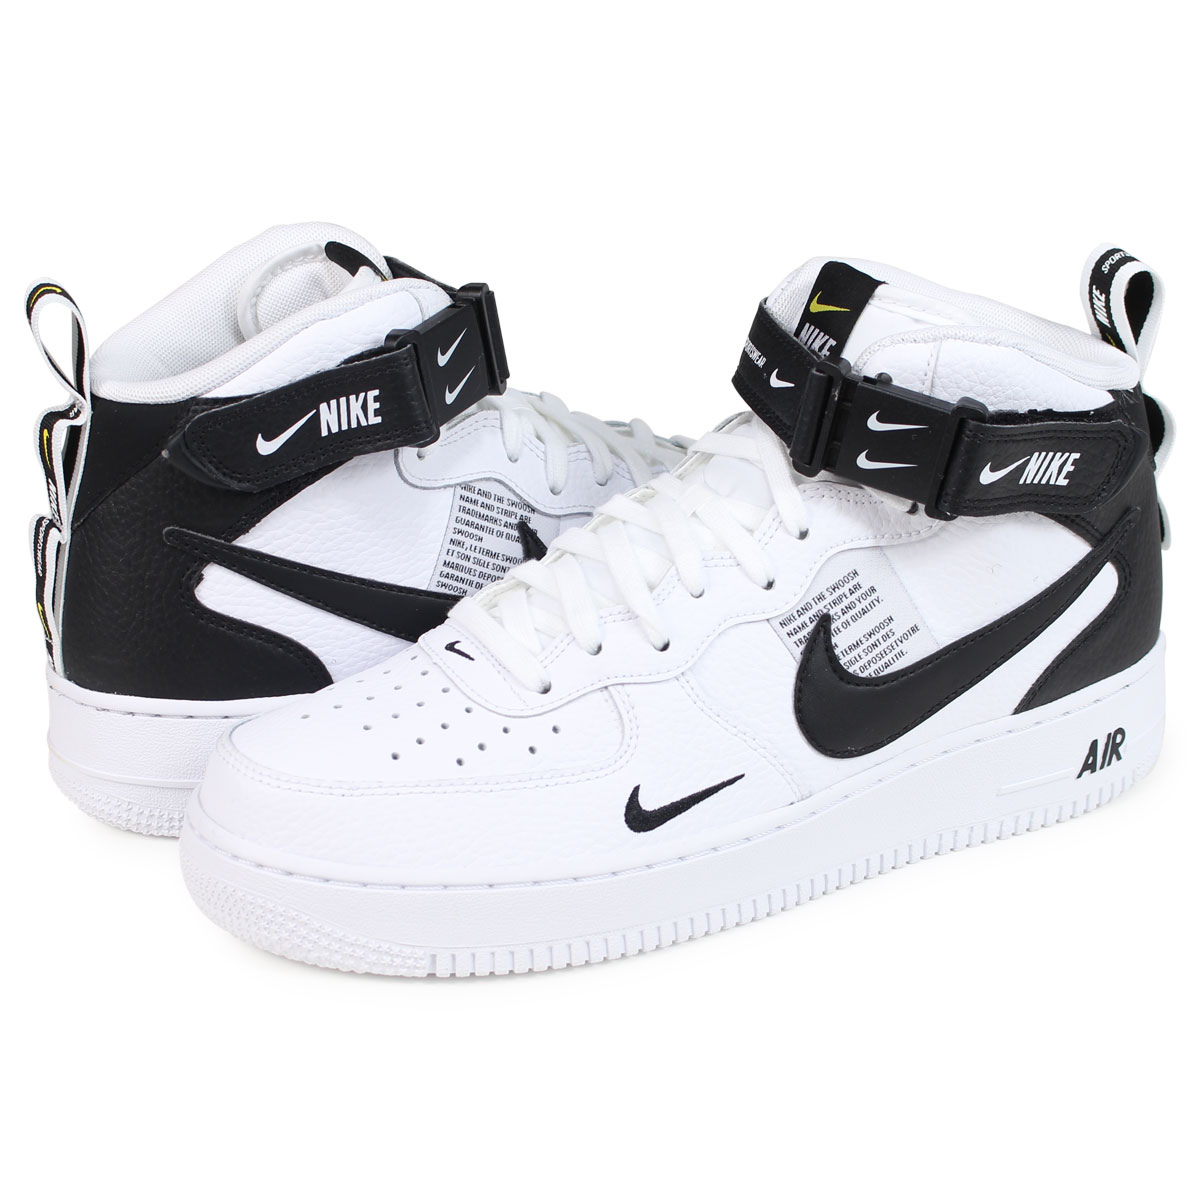 ALLSPORTS  Nike NIKE air force 1 sneakers men AIR FORCE 1 MID 07 LV8 ... 559b19cd4372